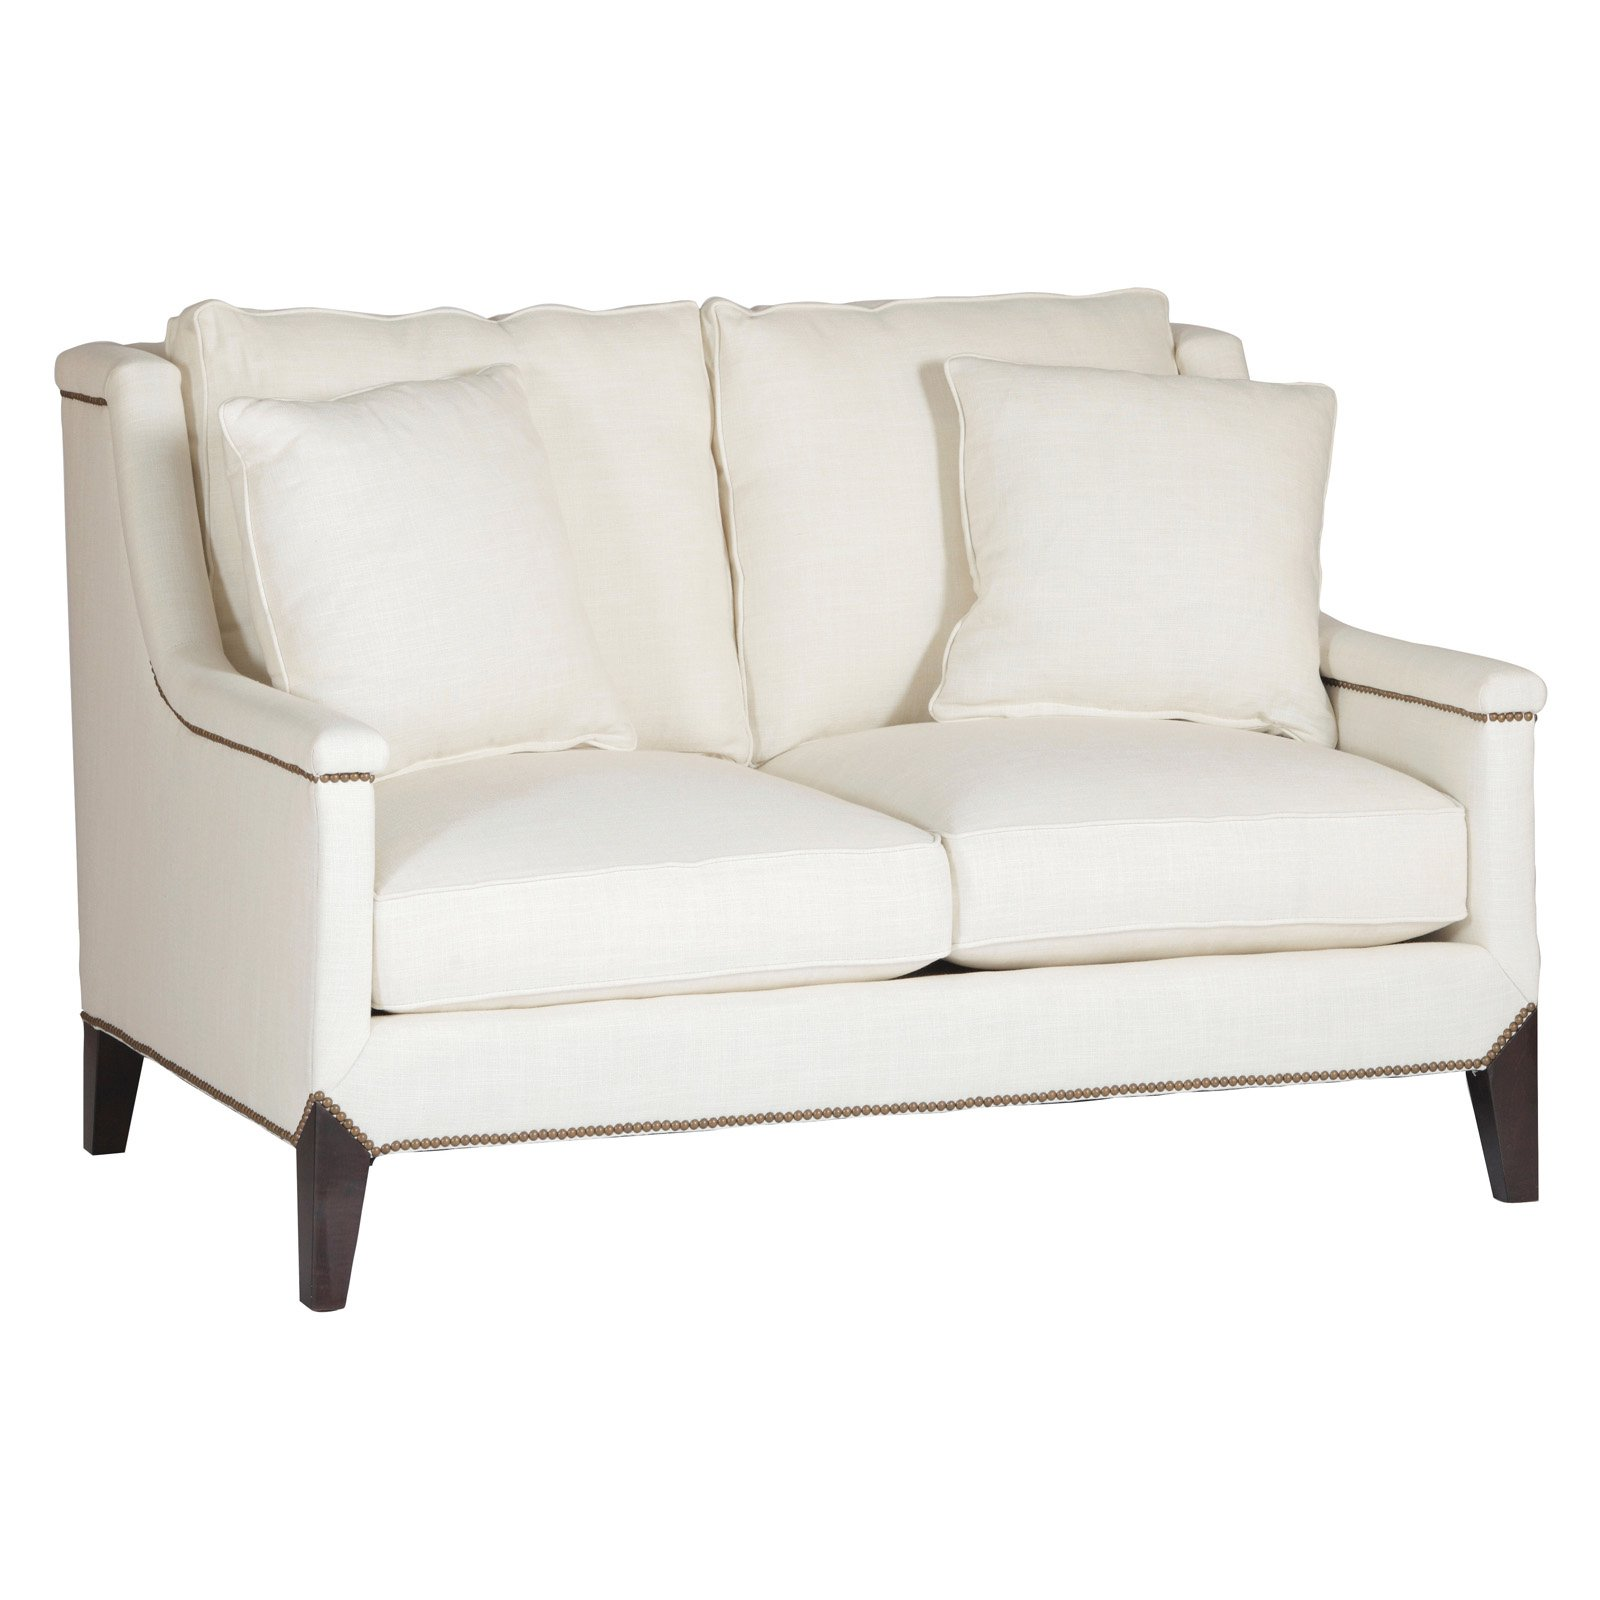 Astounding Gabby Liam Capped Arm Loveseat In 2019 Products Bralicious Painted Fabric Chair Ideas Braliciousco